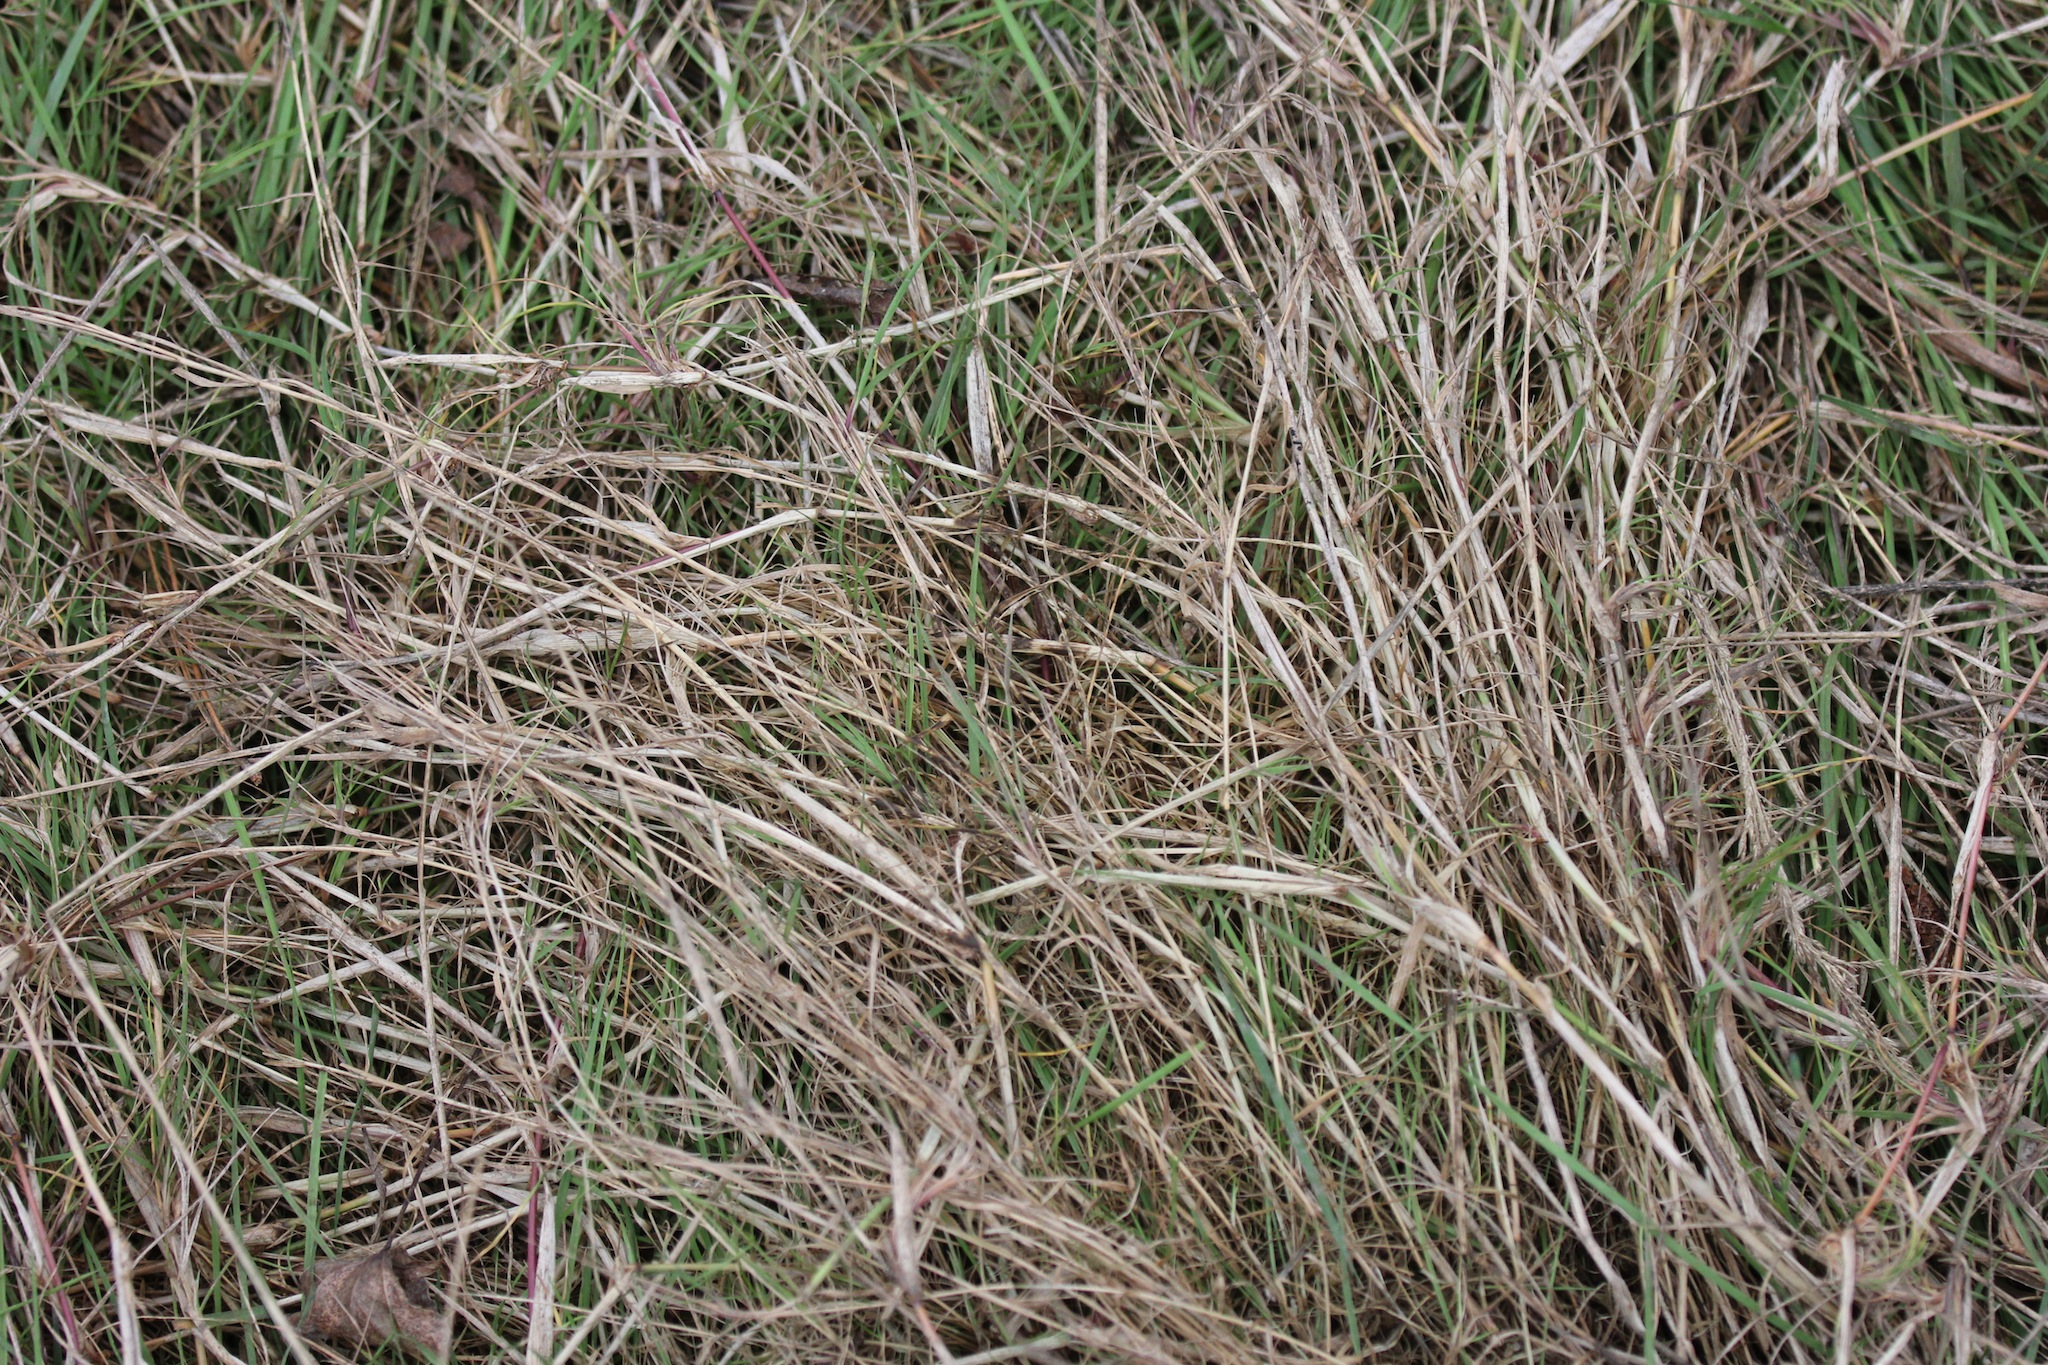 Weave a basket with this grass and collect all the equipment